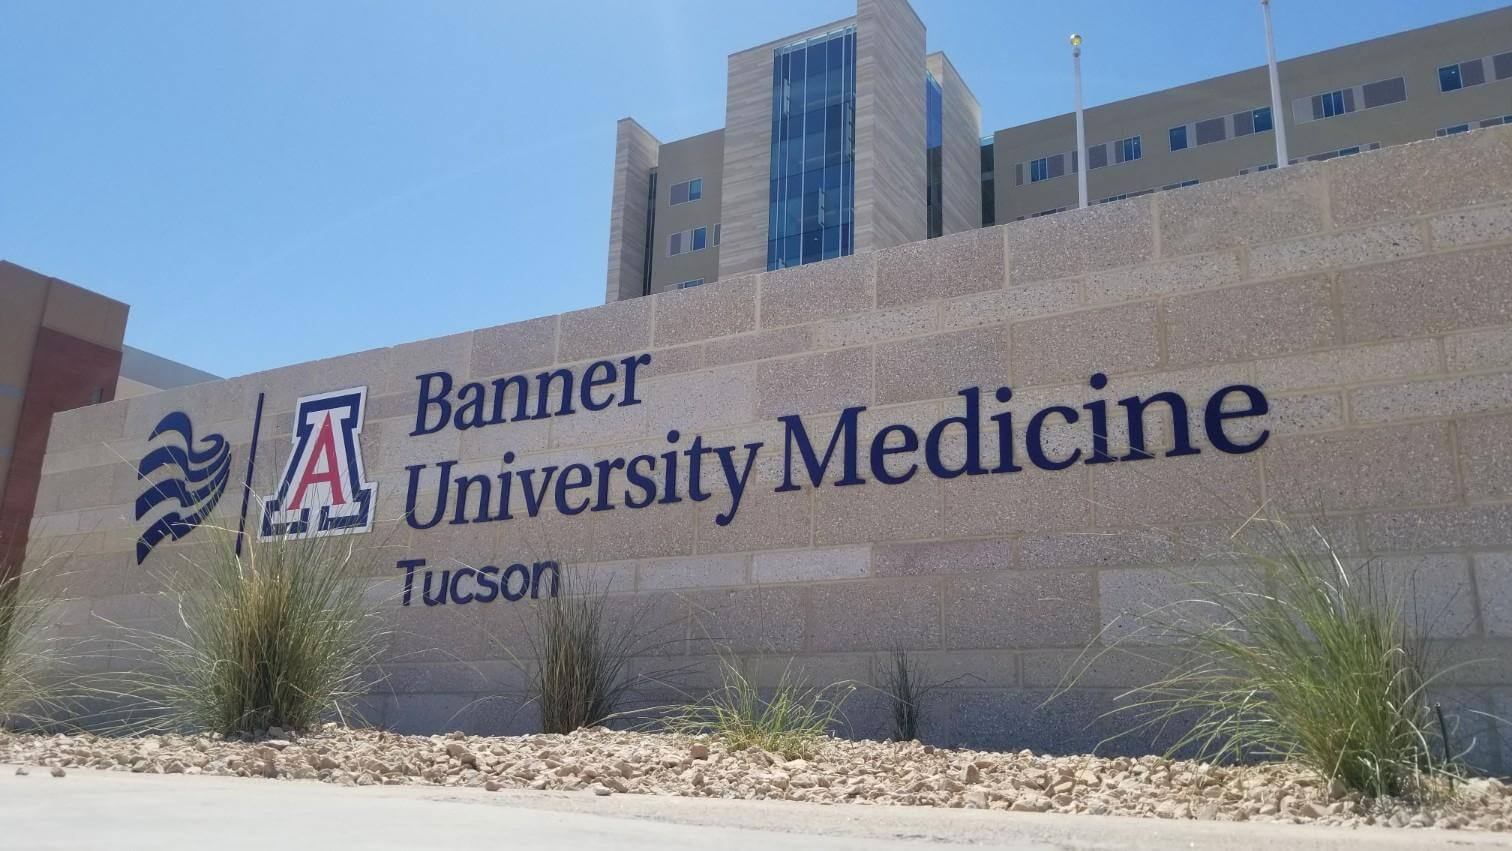 Banner University Medical Main Monument Signs